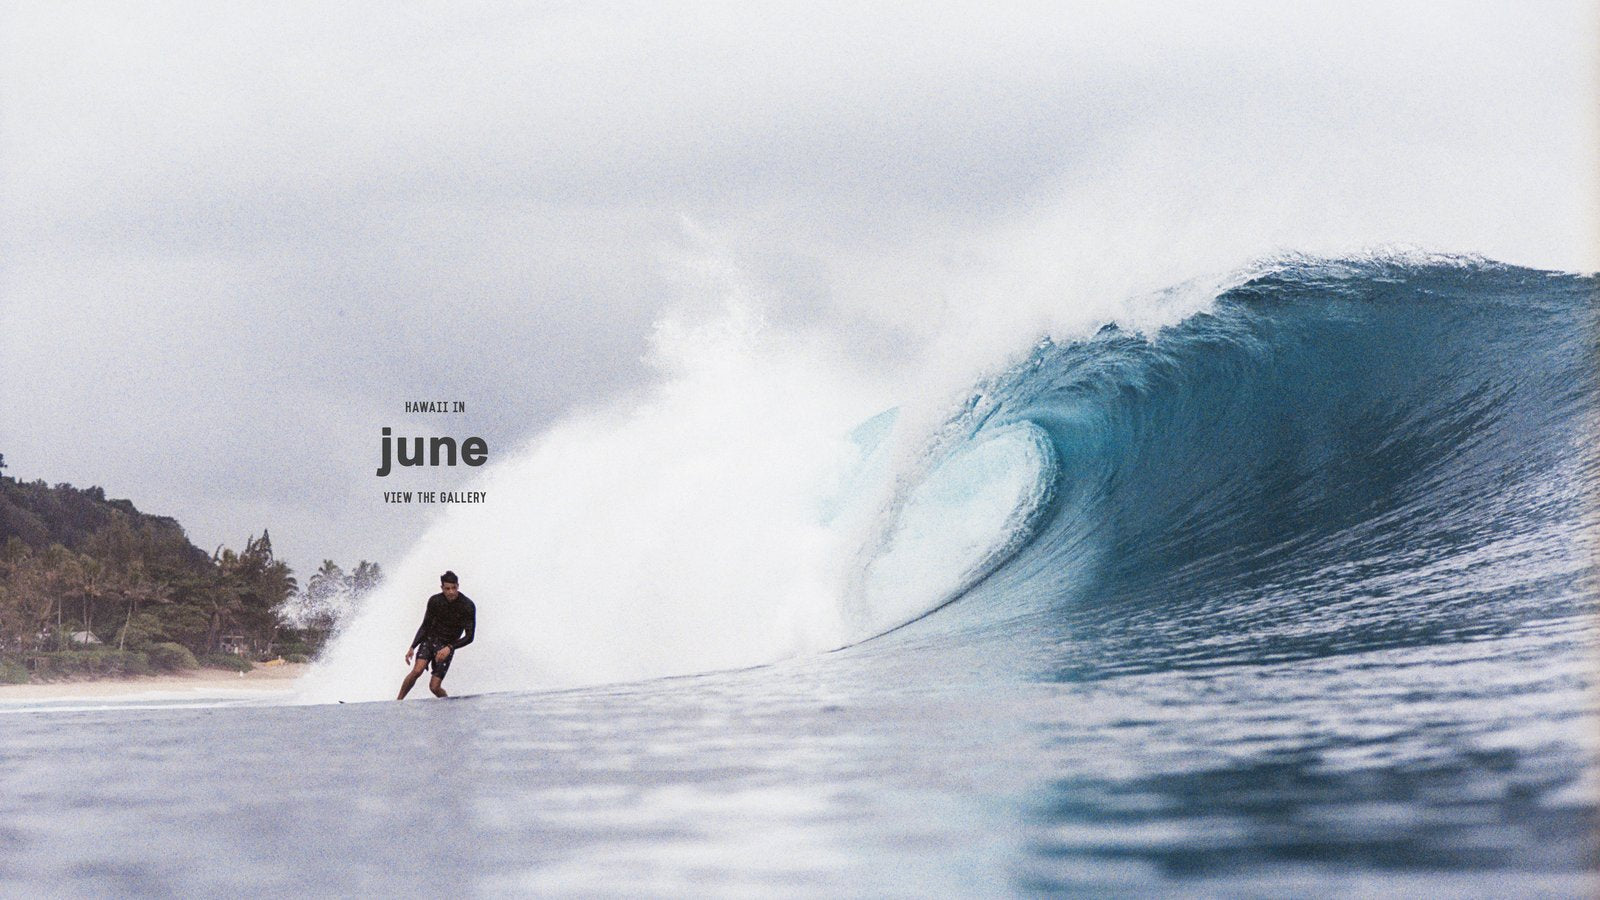 Hawaii in June